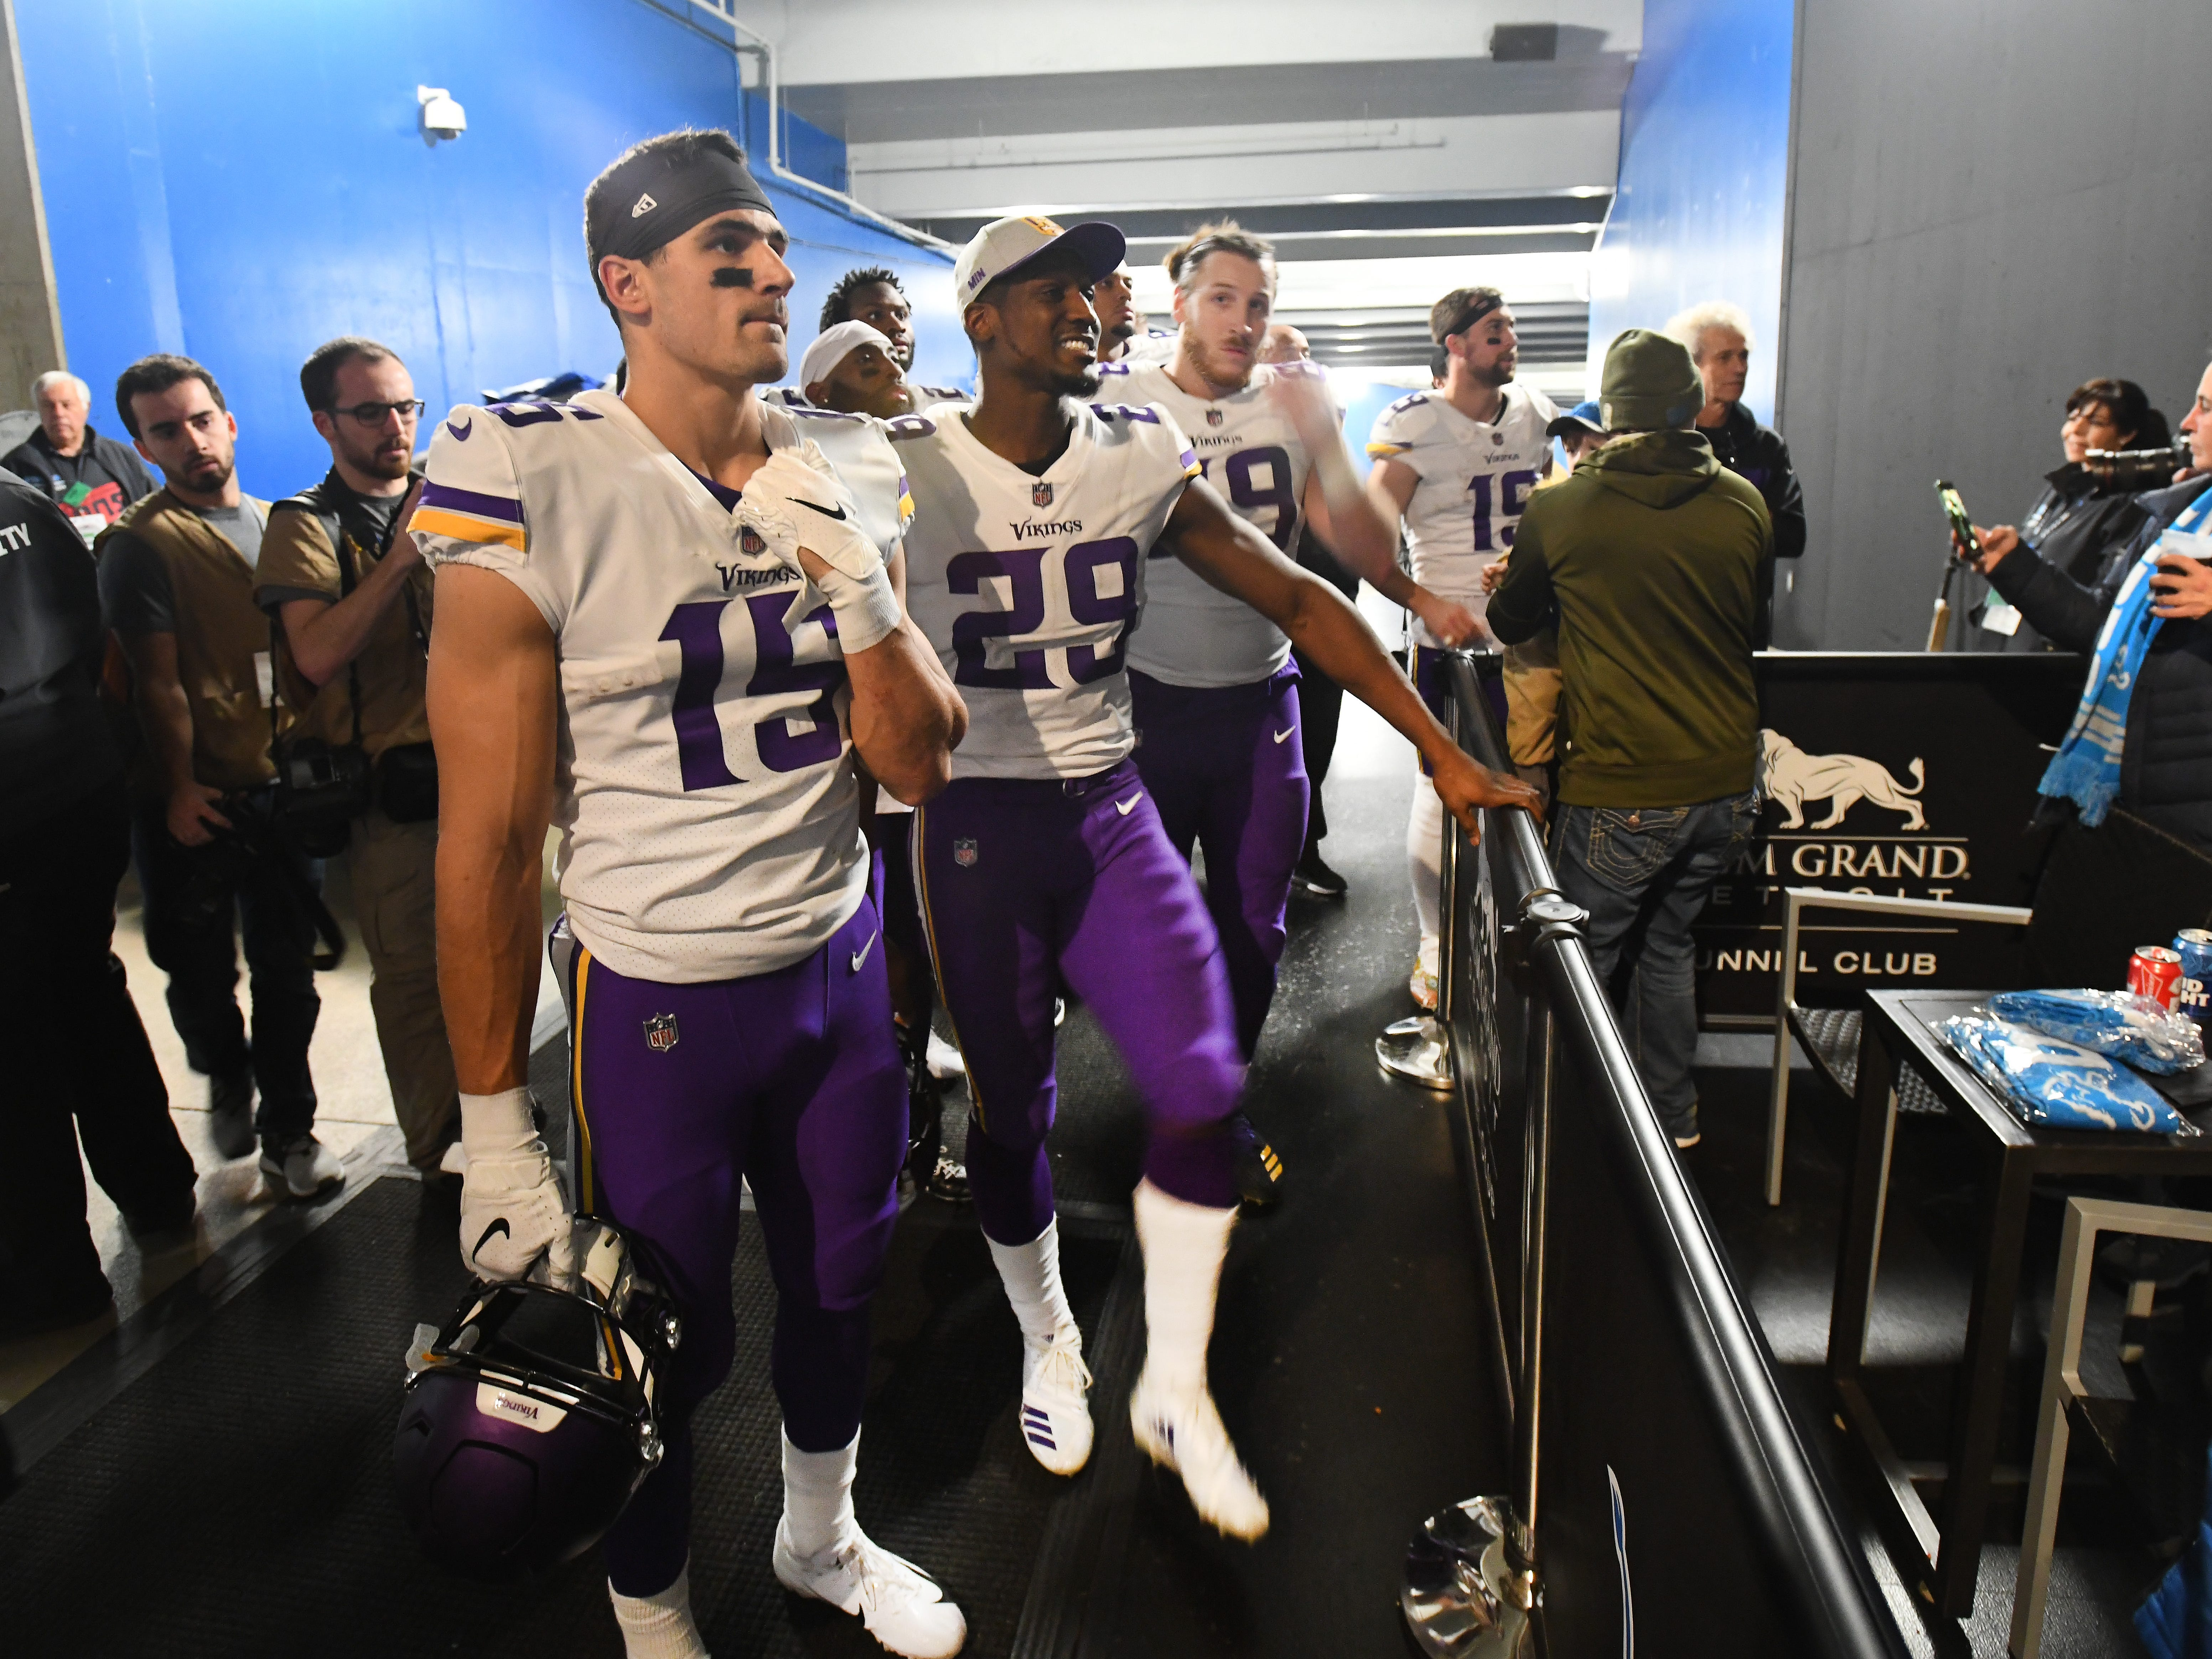 Vikings players stop in the tunnel at the MGM Grand Detroit Tunnel Club to watch the Eagles, Texans game, which will impact their playoff status after beating the Lions 27-9 in Ford Field.